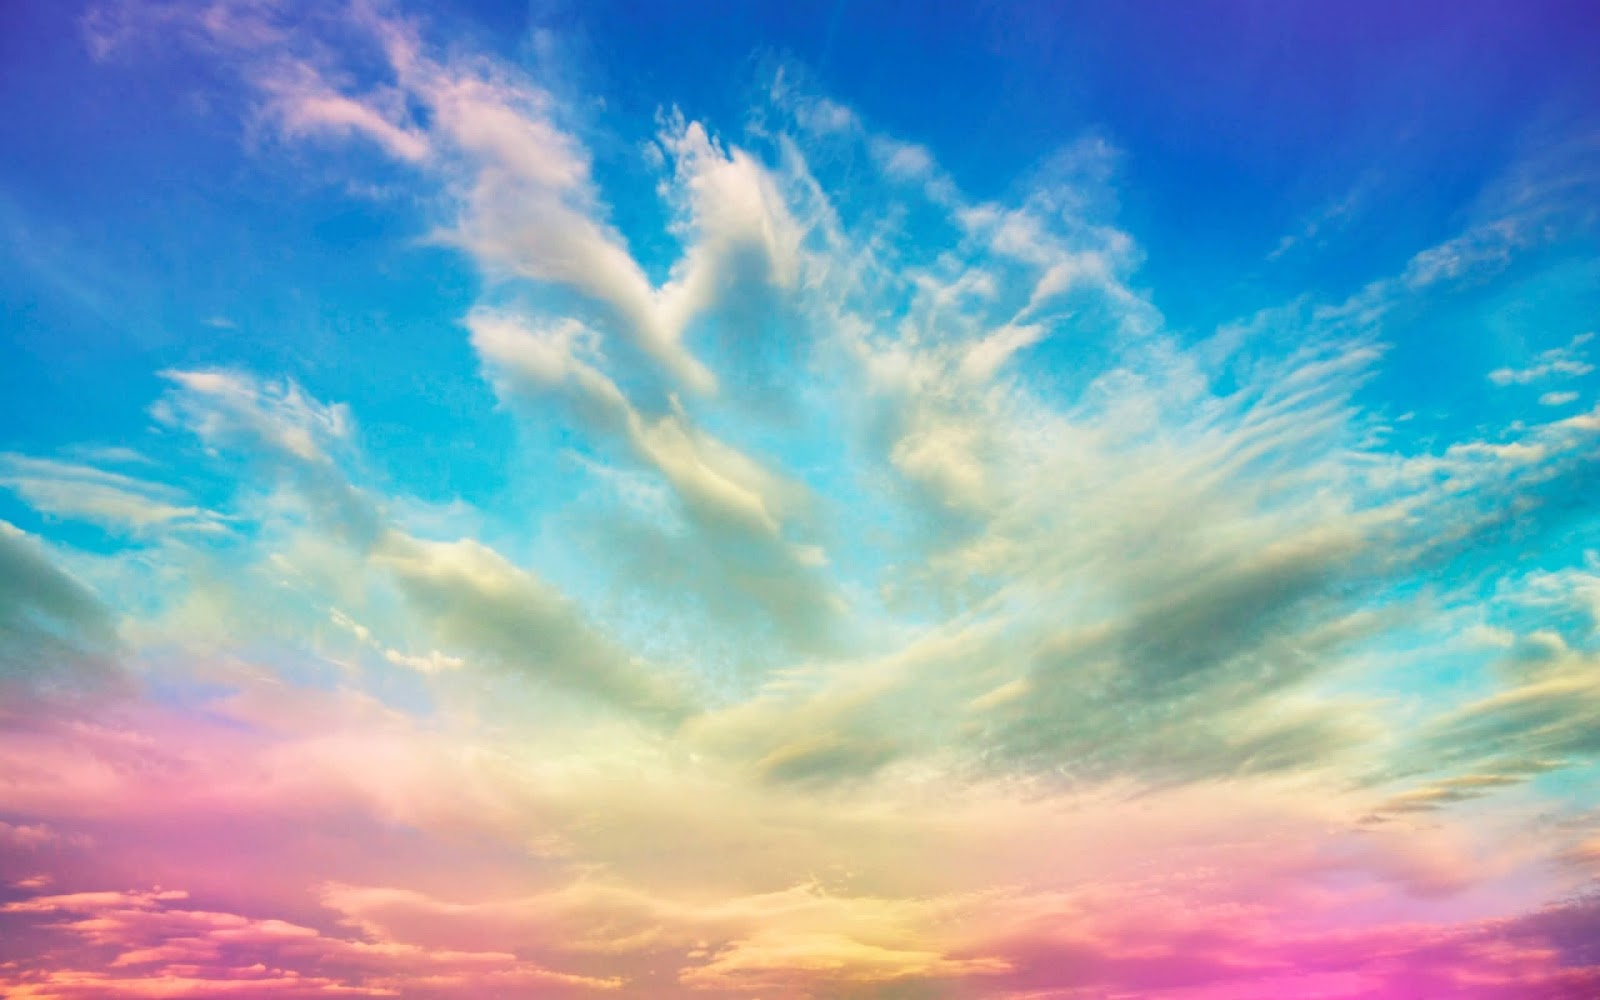 hd wallpapers for desktop sky cloud wallpapers hd 1600x1000